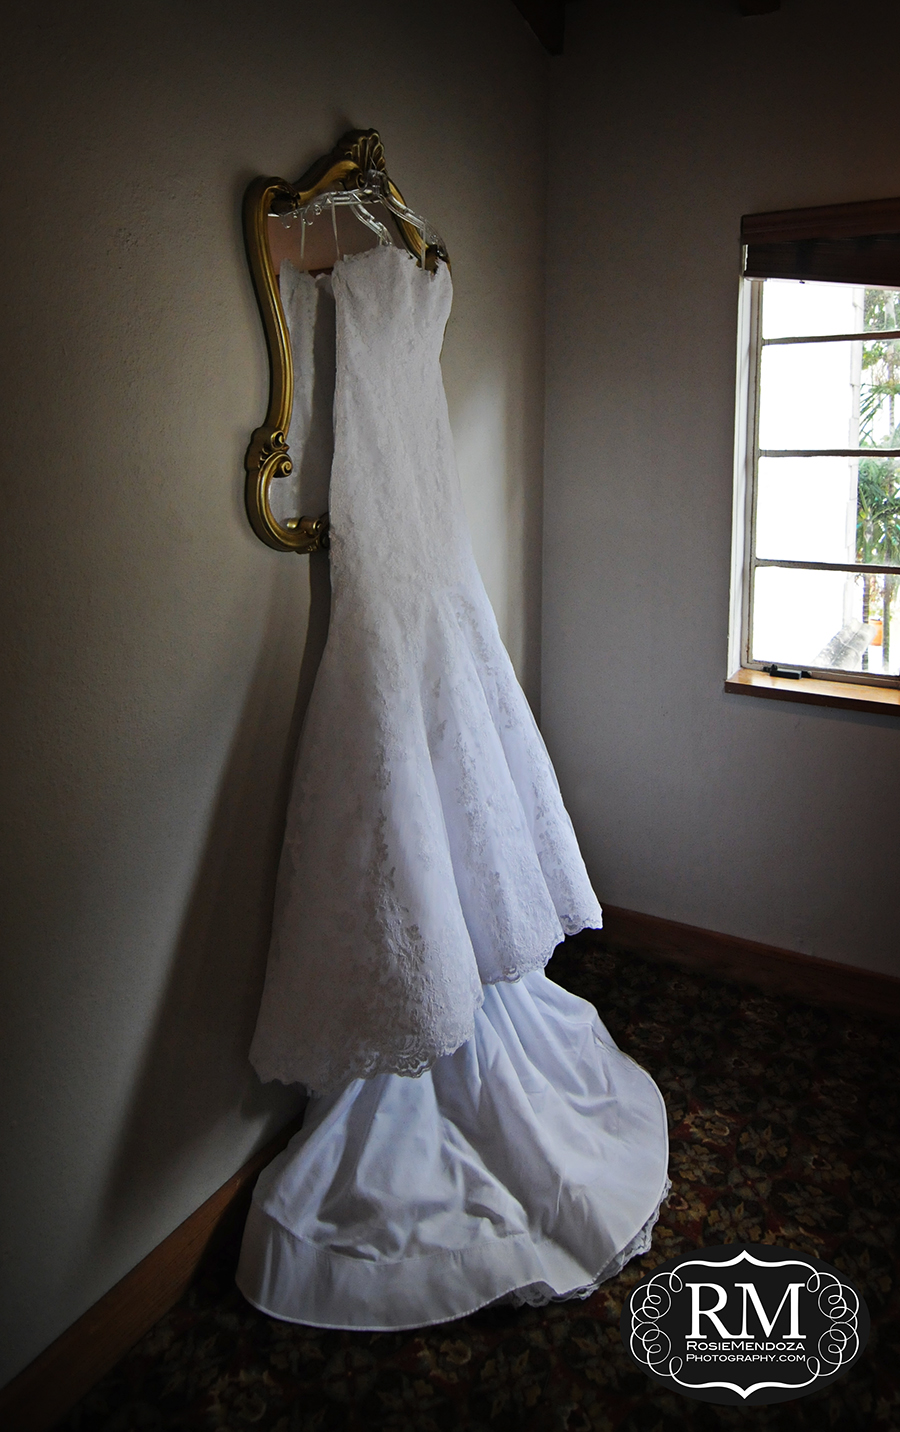 Wedding dress still